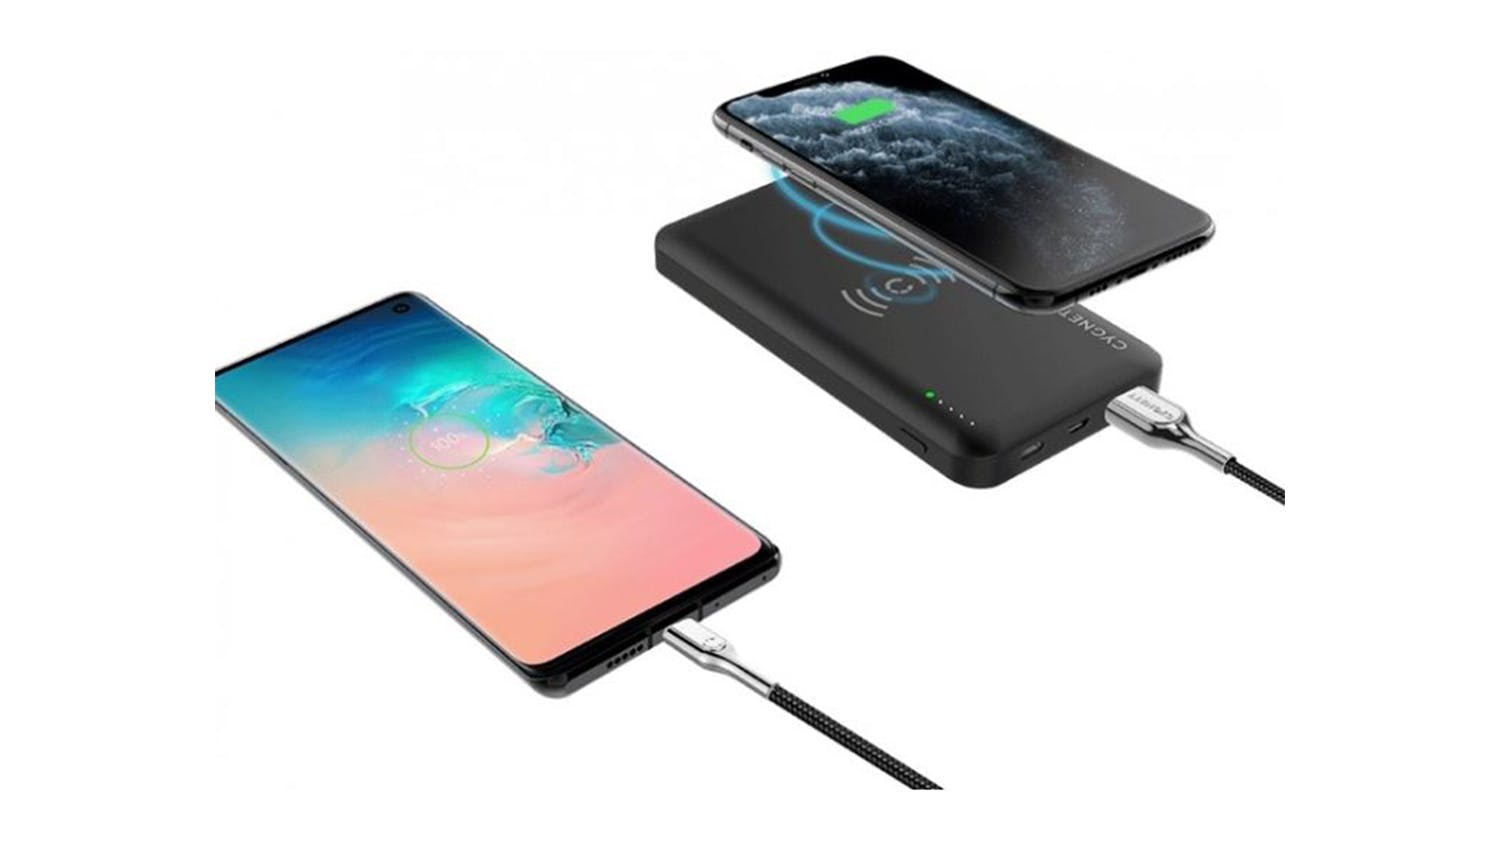 Cygnett ChargeUp Force 5,000mAh Power Bank with 5W Wireless Charging